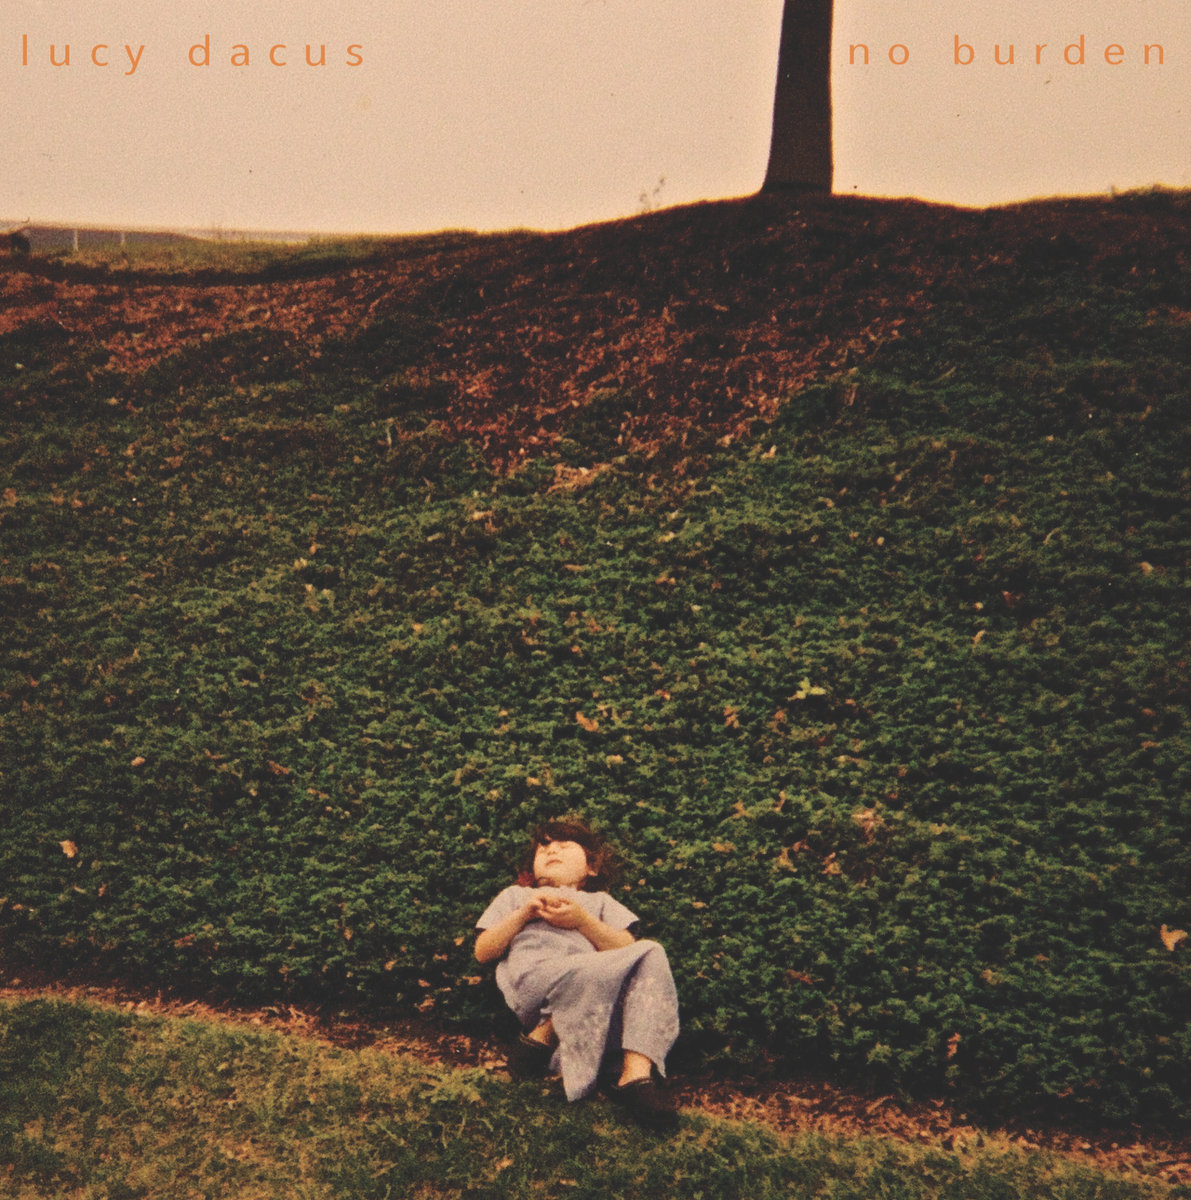 Direct Address | Lucy Dacus